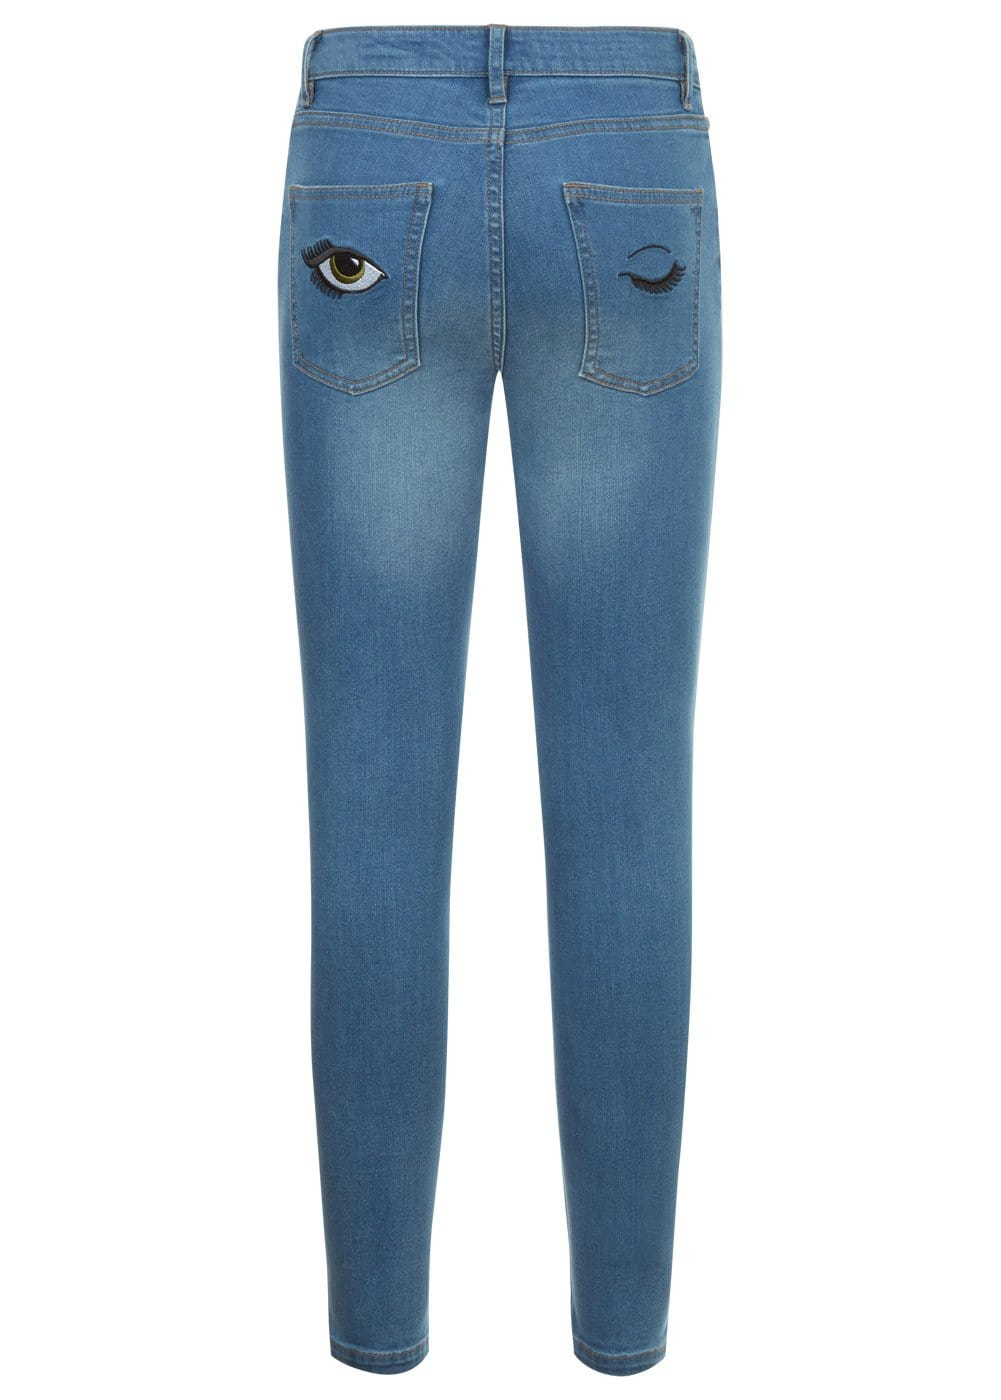 Youth Girls Blue Skinny Jeans with Embroidered Eyes Pockets